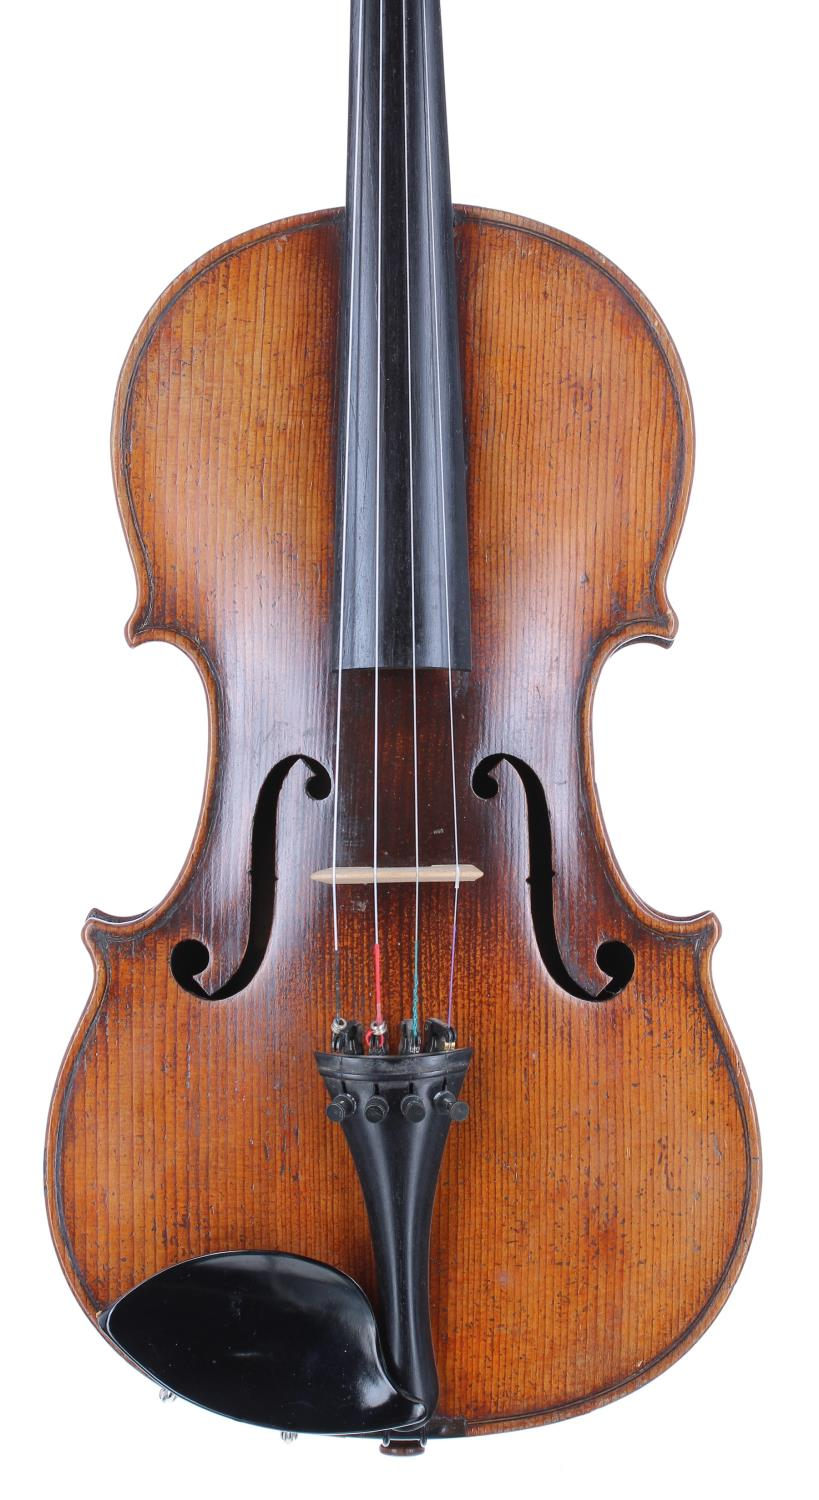 Good French violin of the Caussin School circa 1890 and labelled Antonius Stradivarius..., the one